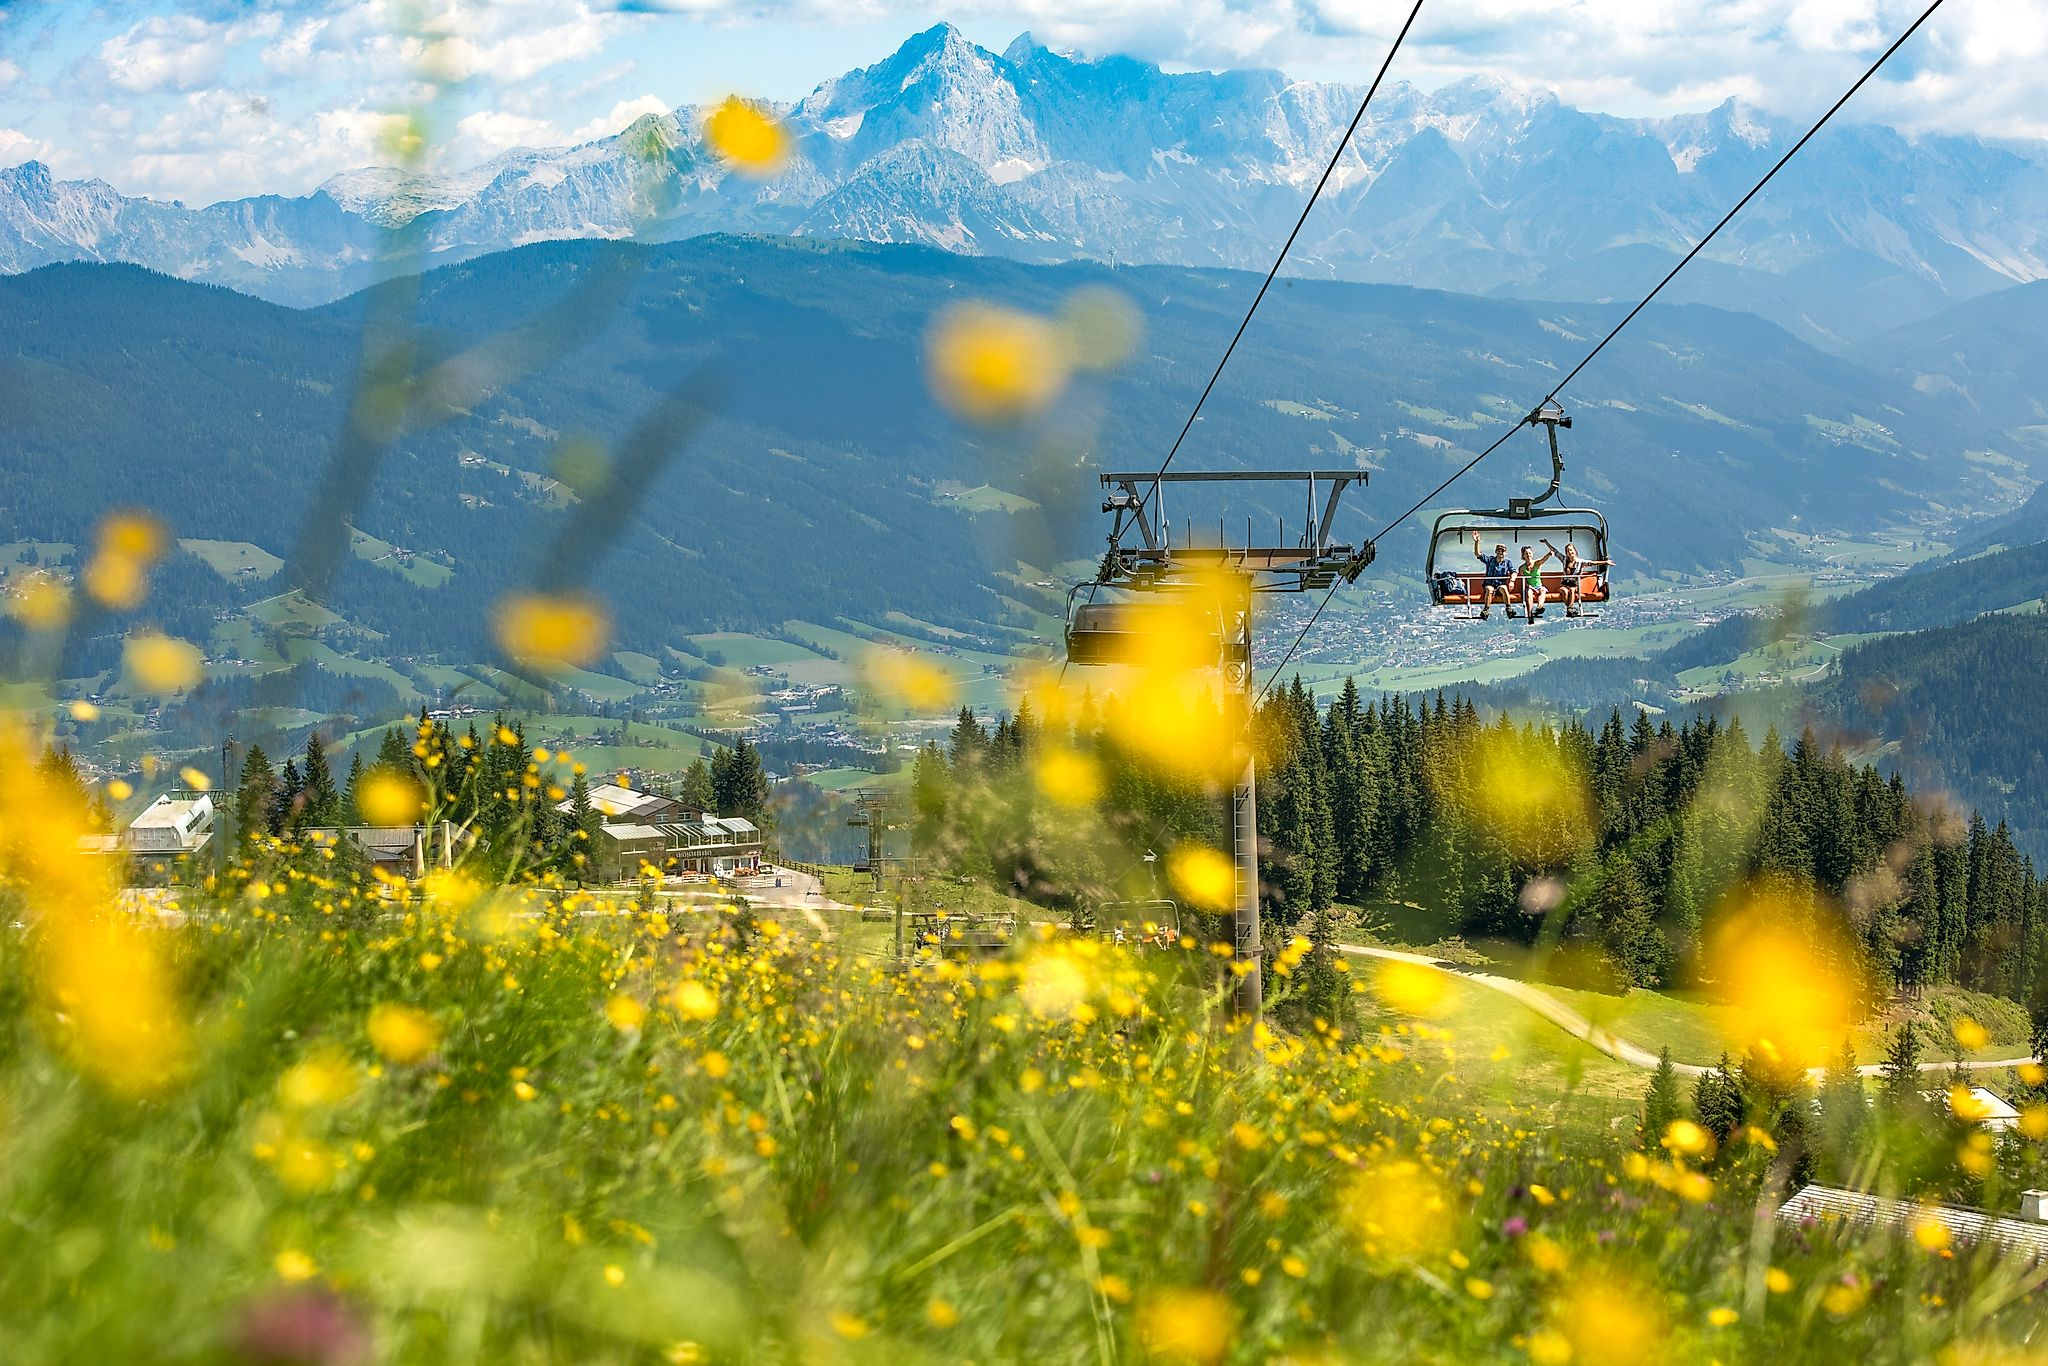 <p>The chairlift takes you comfortably to the Grießenkar hiking area in summer.</p>